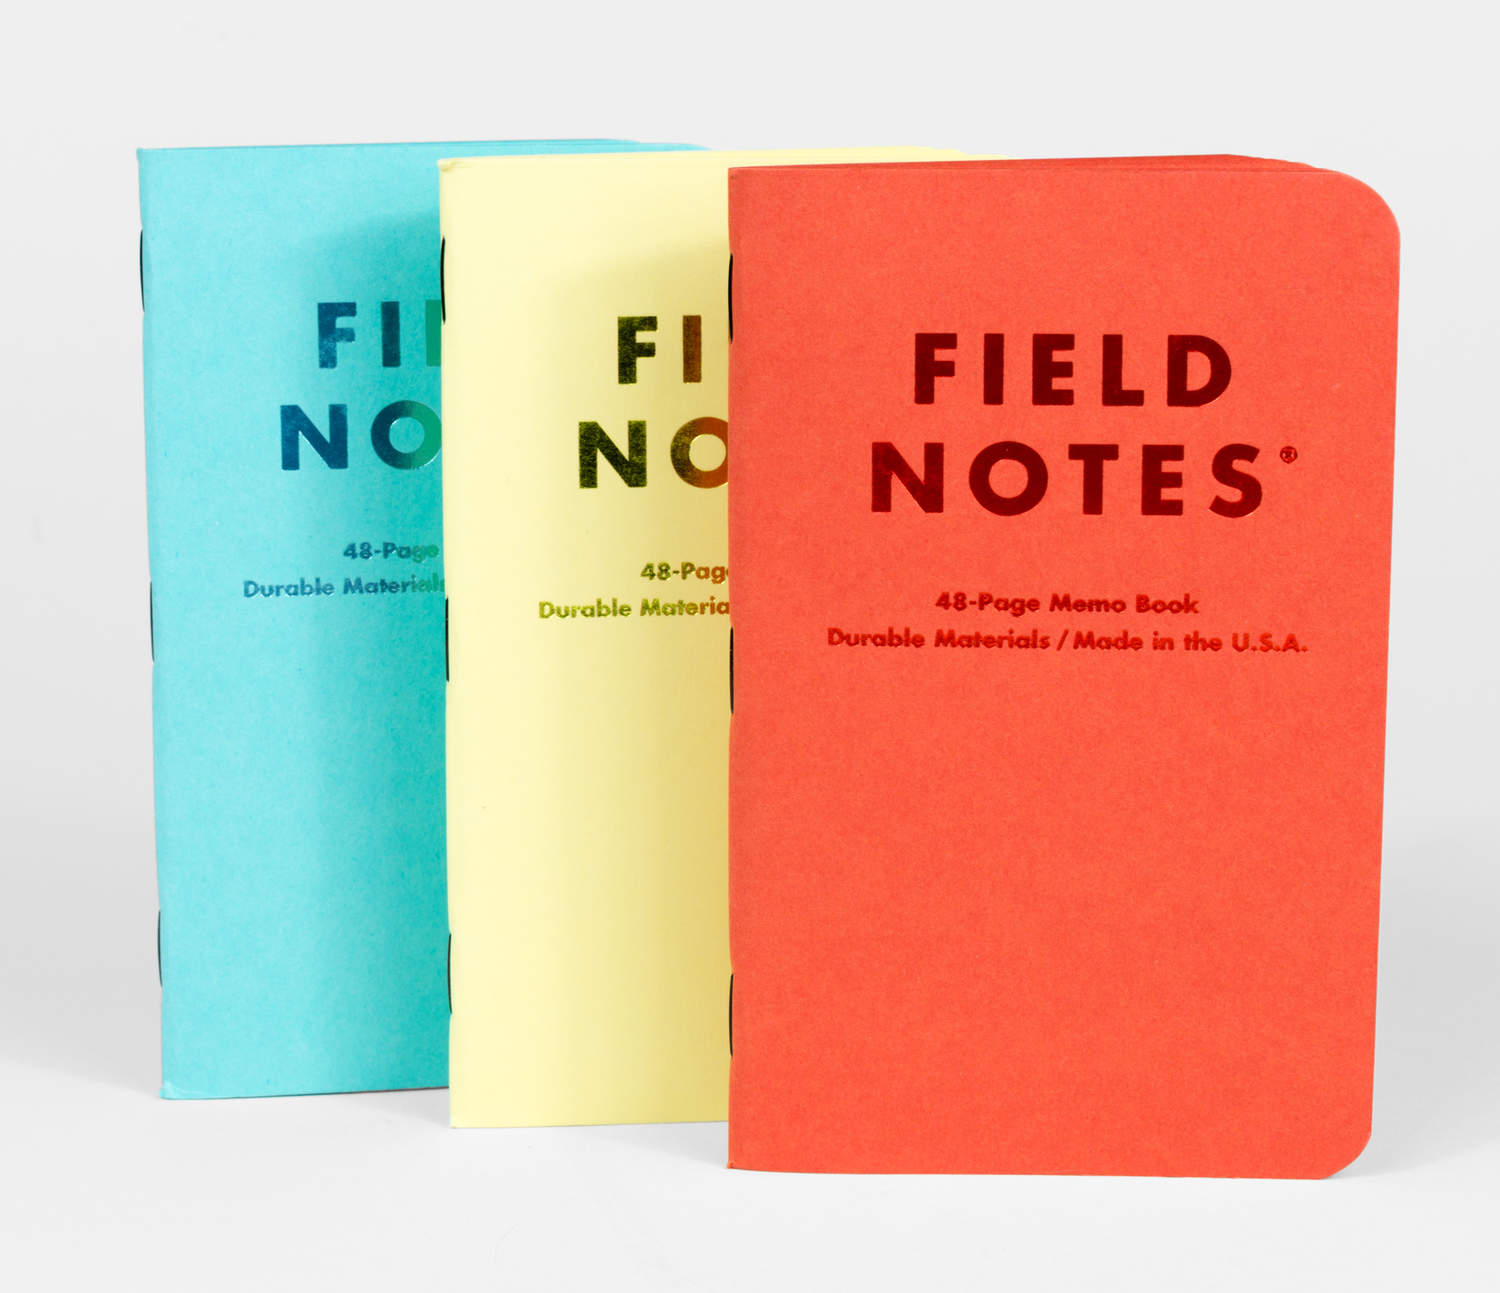 Field Notes Brand Sweet Tooth Field Notes at buyolympia – Field Note